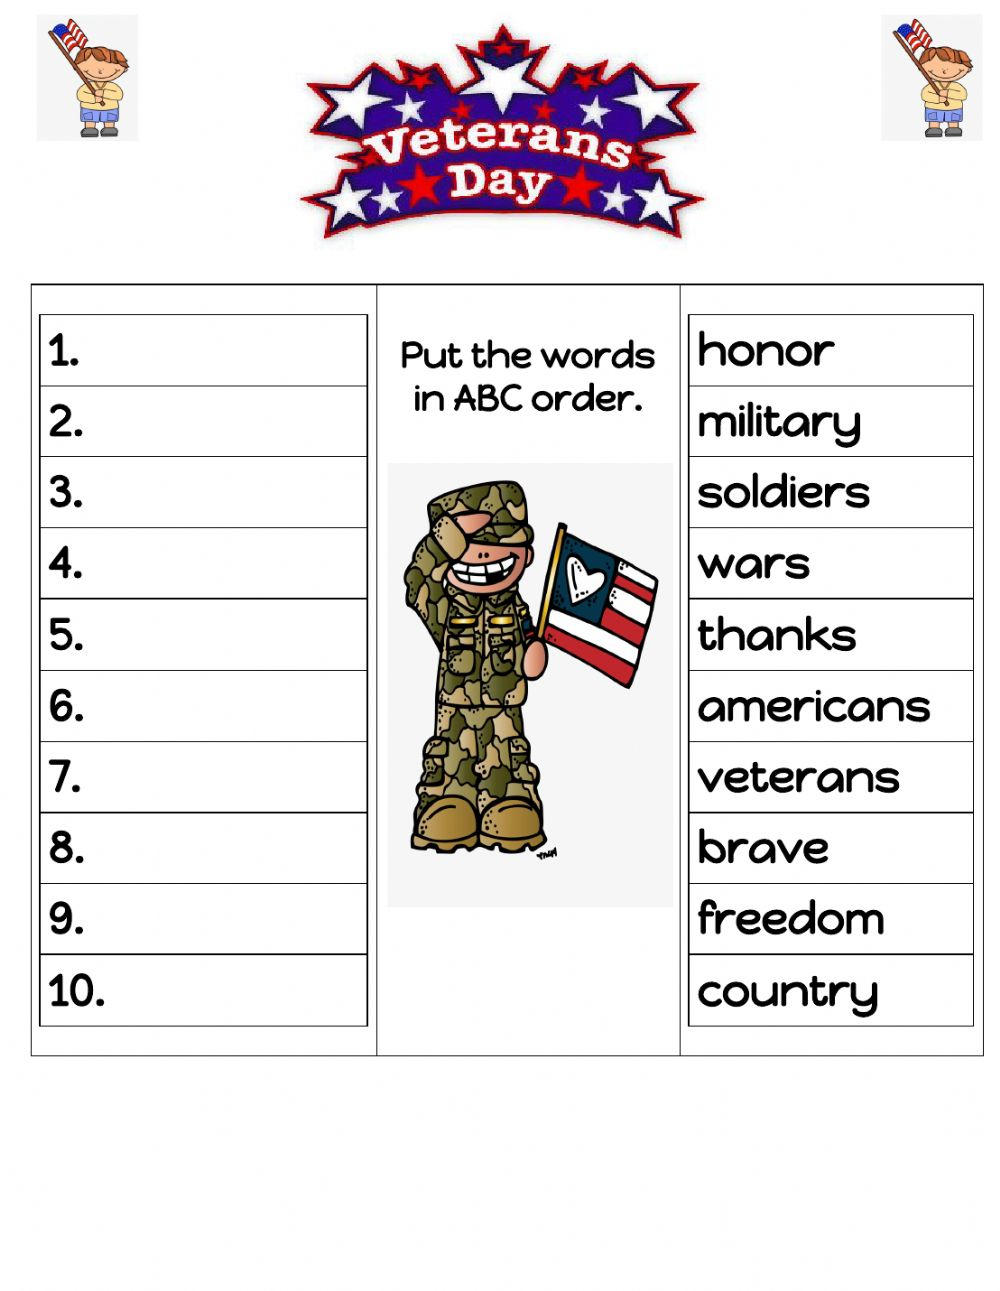 hight resolution of Veterans Day ABC order worksheet